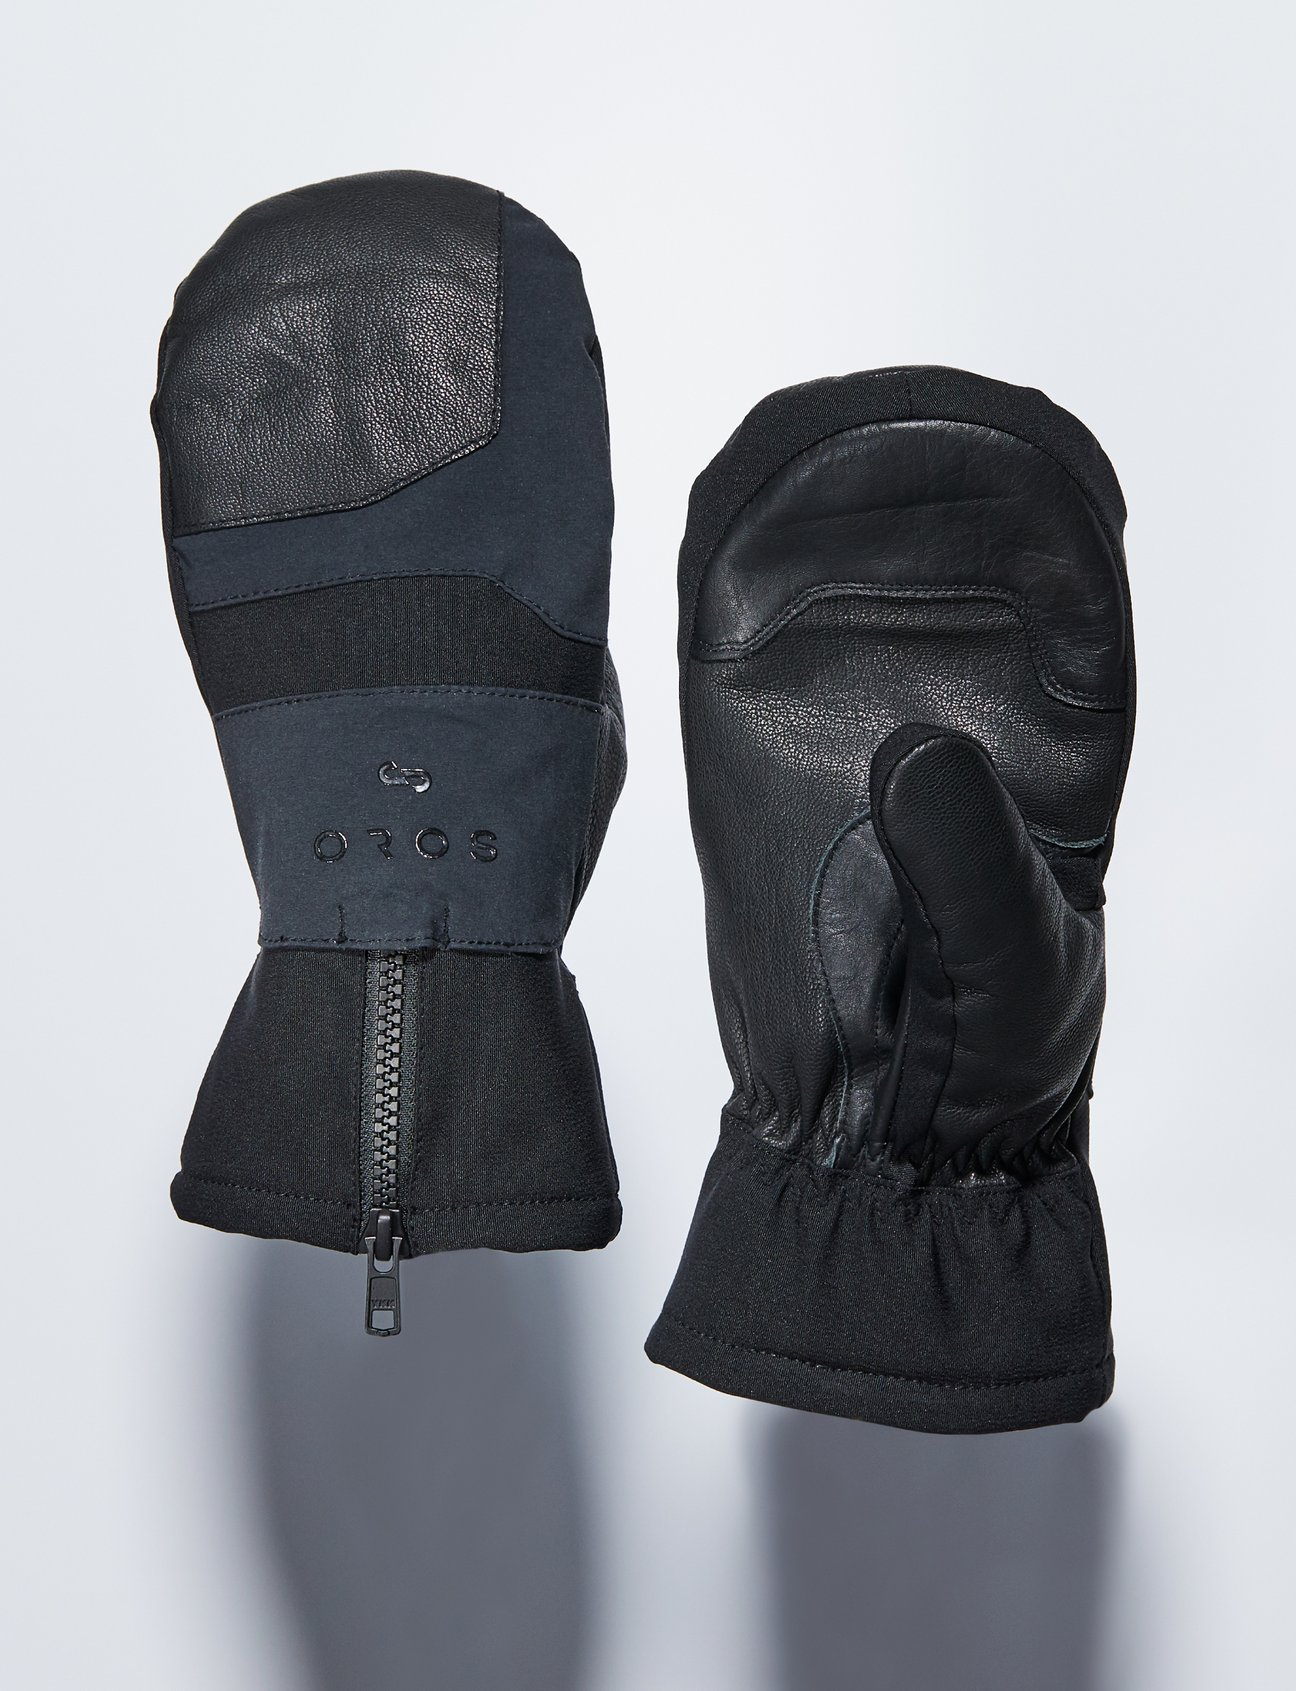 OROS Mittens reviewed by Mountain Life Media